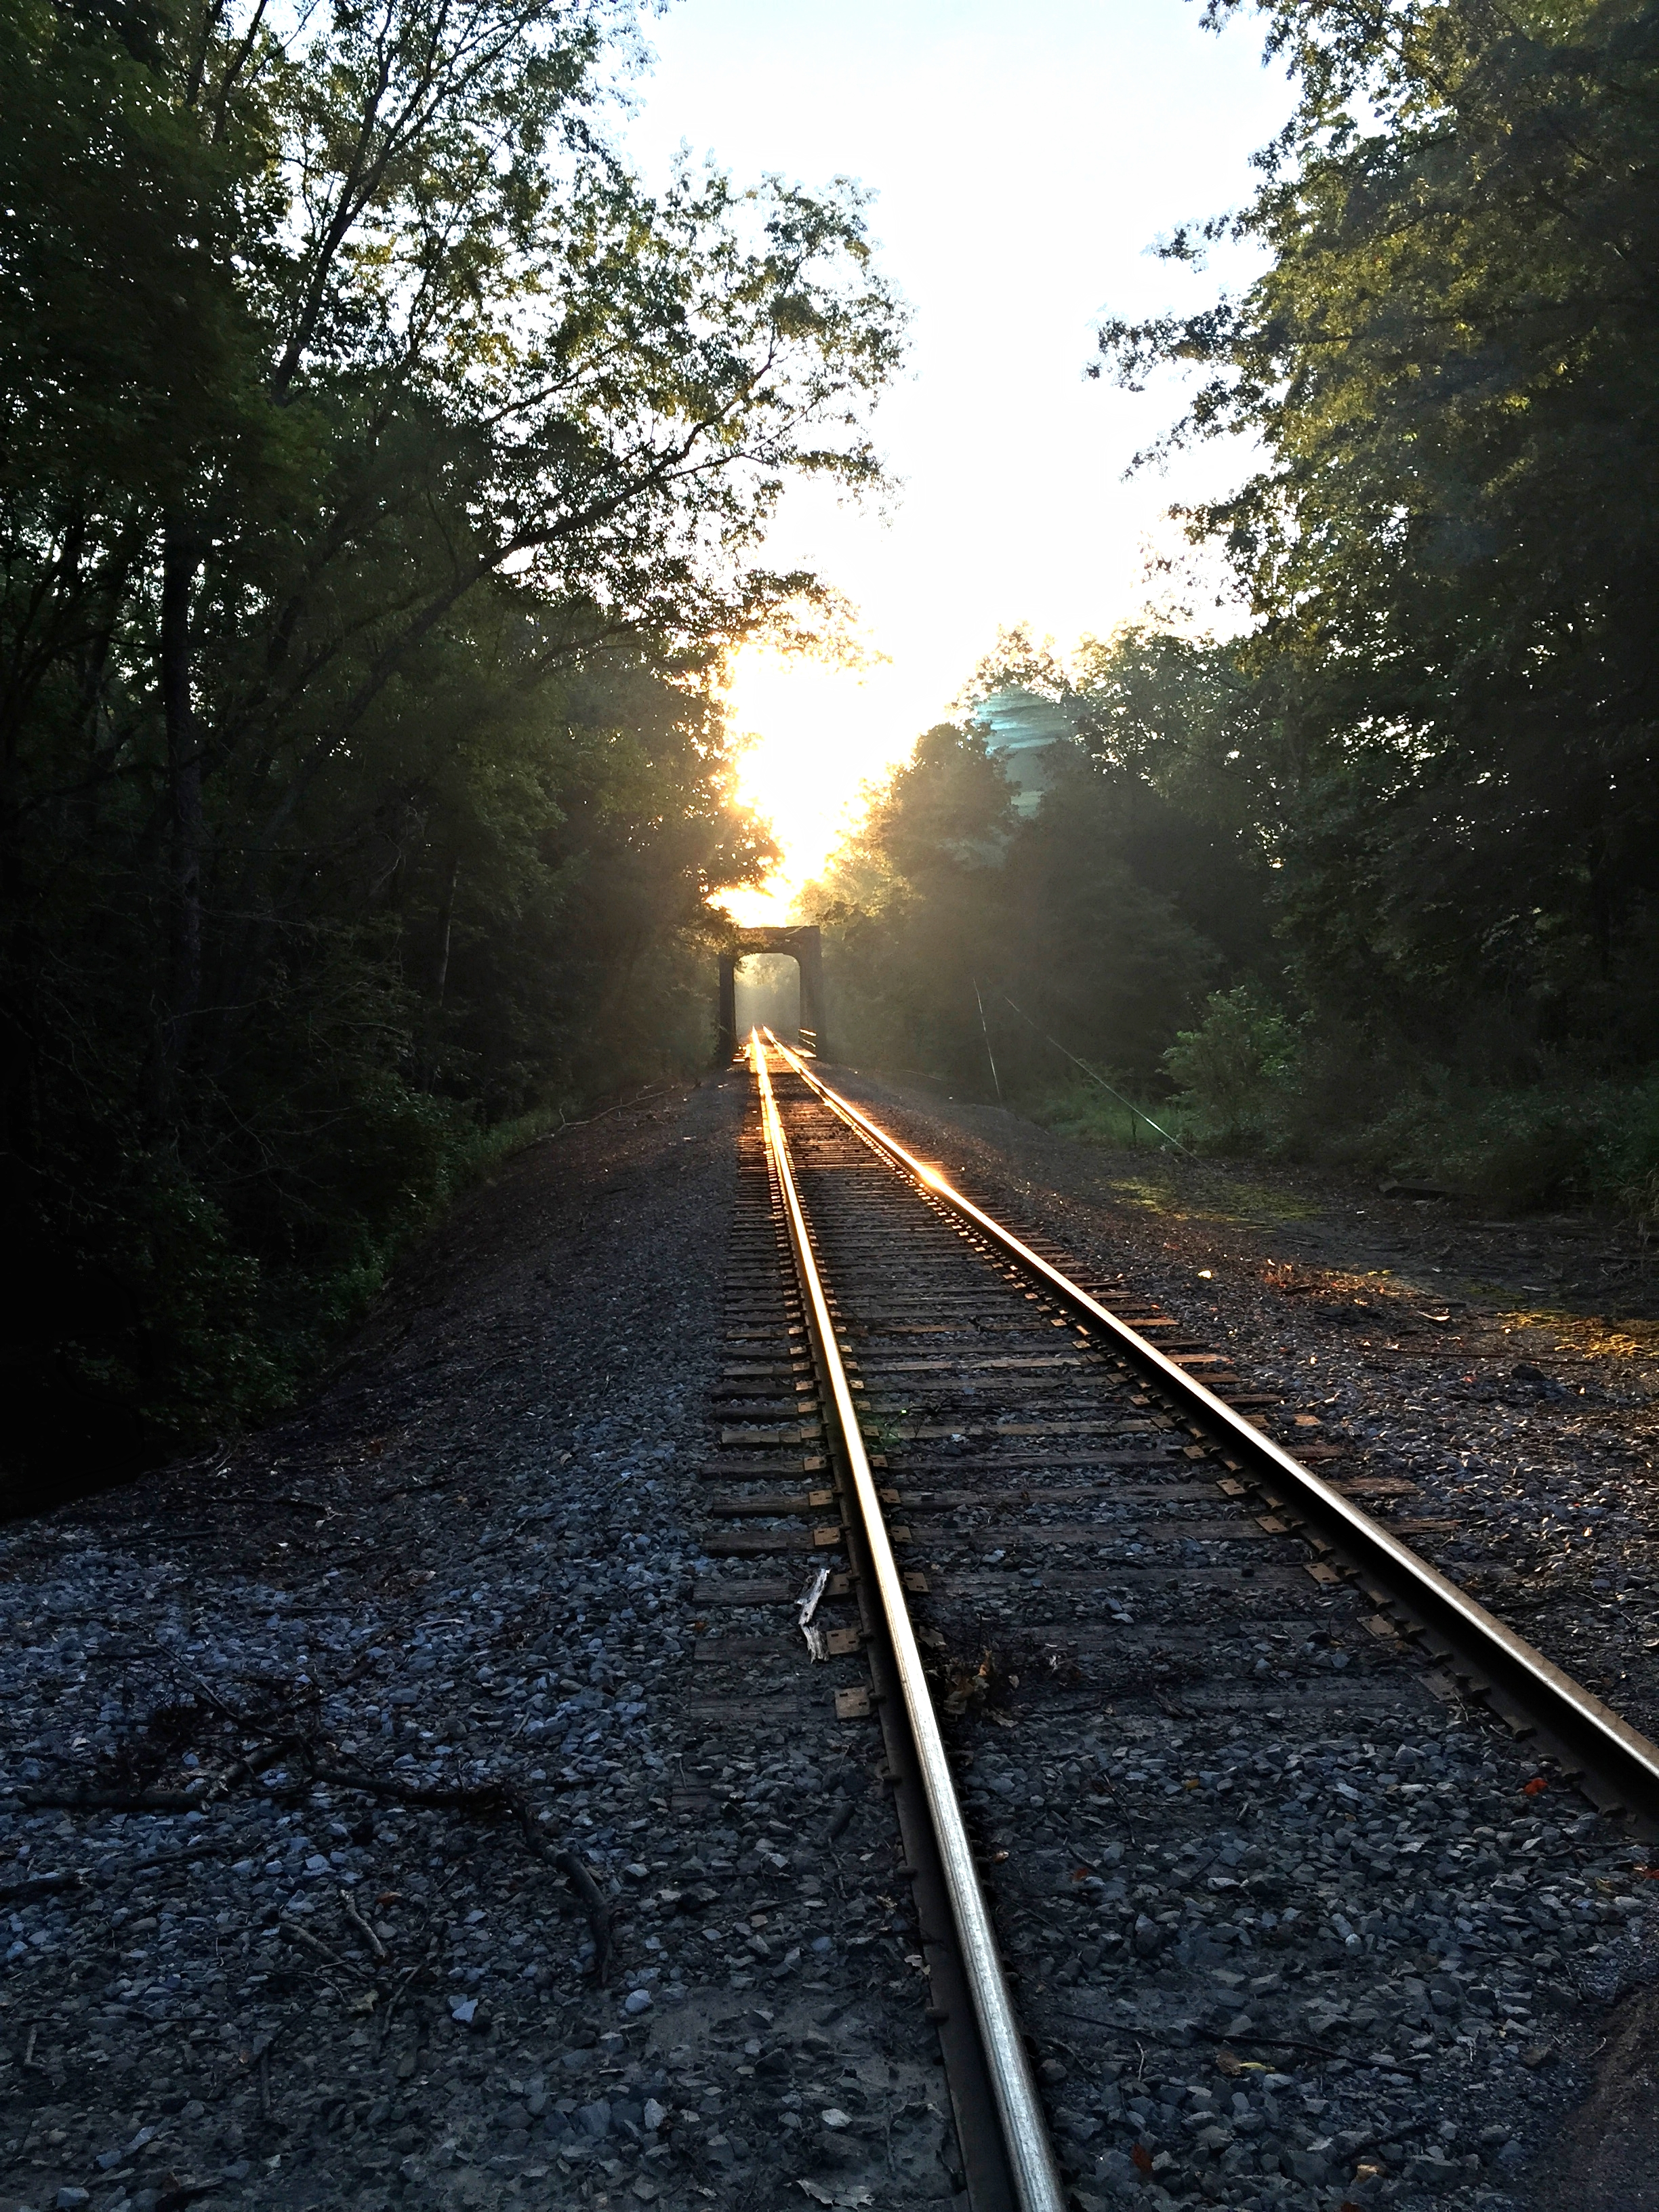 Train tracks in the morning